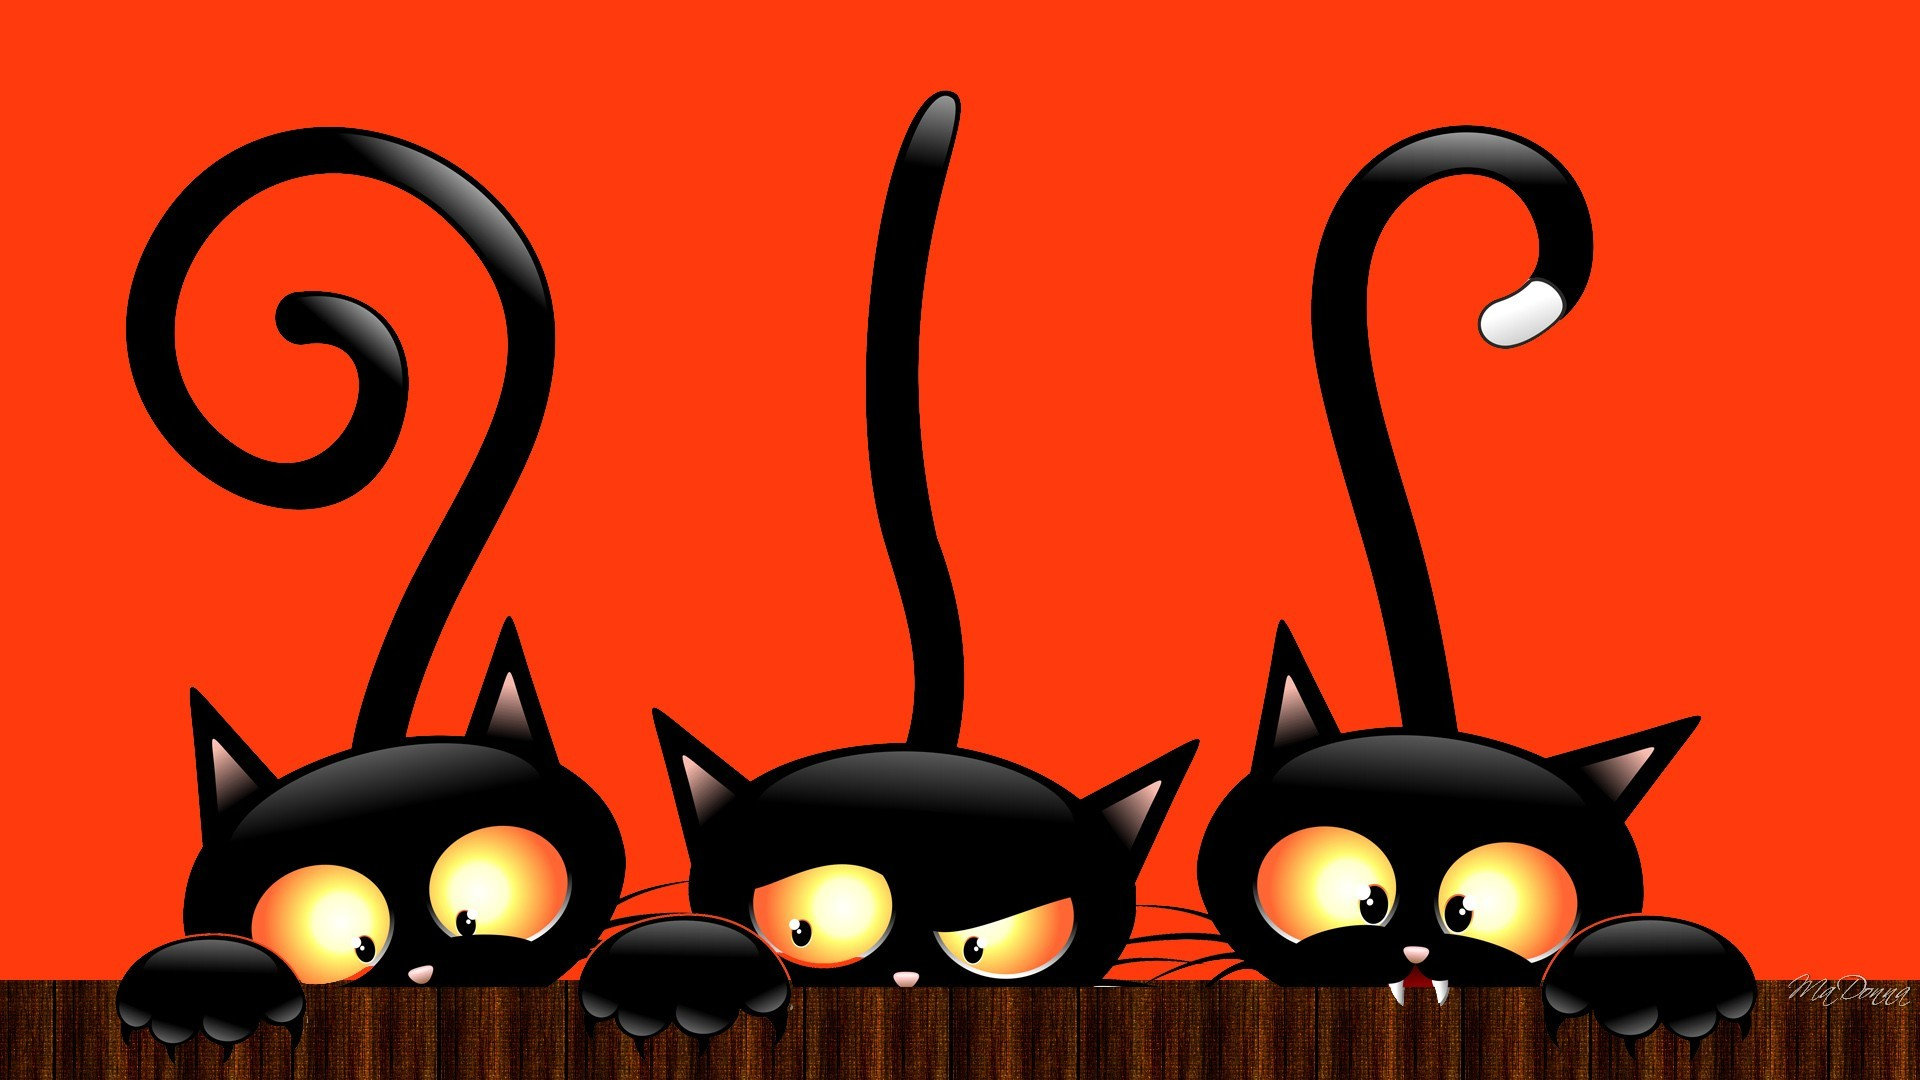 Animated Halloween Wallpaper and Screensavers (54+ images)